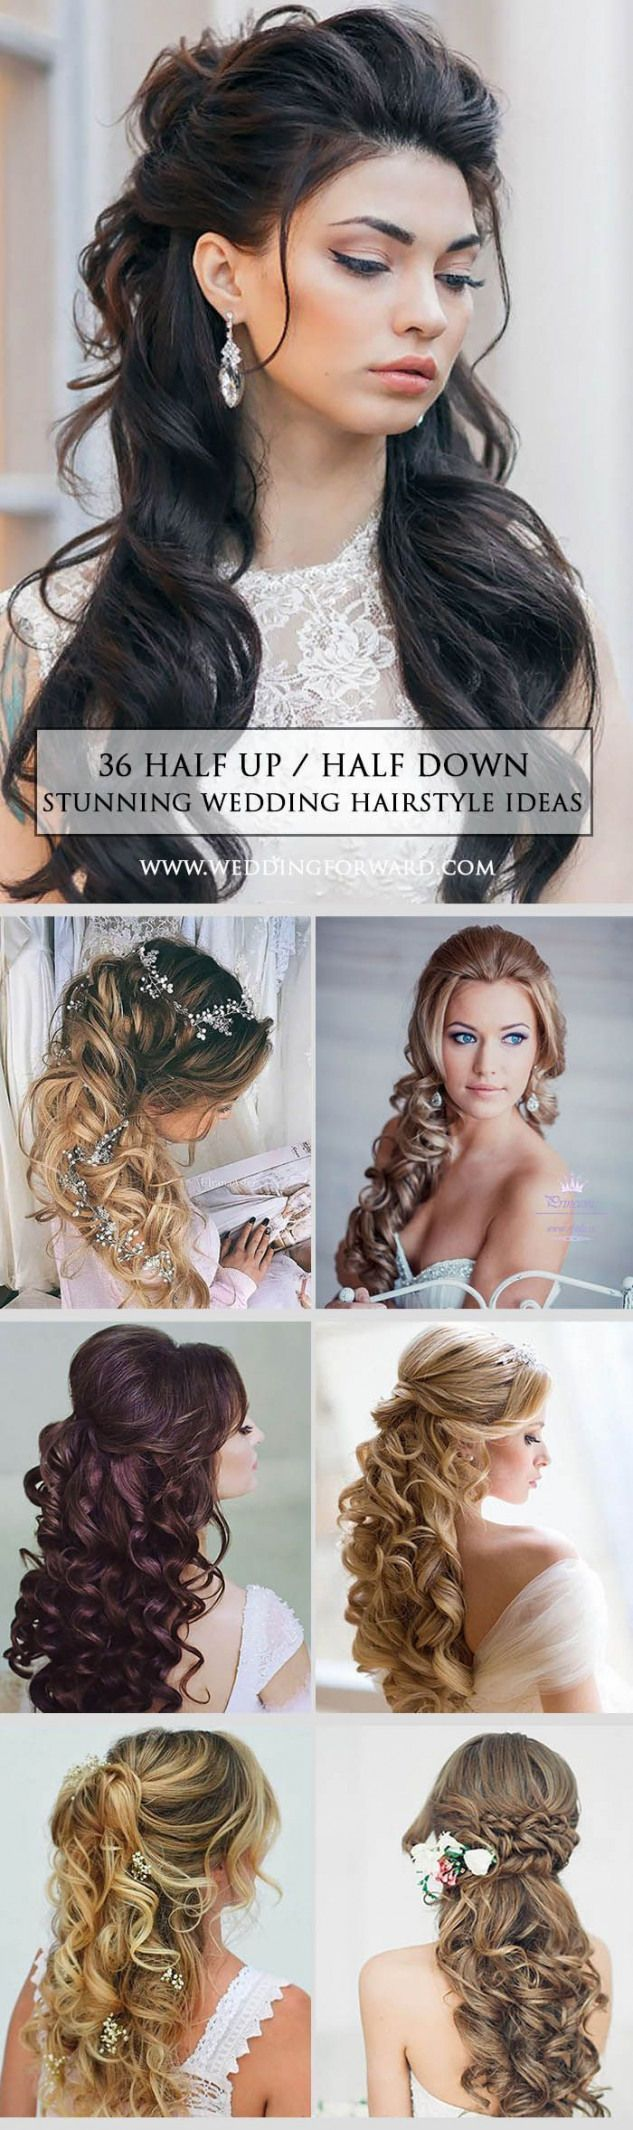 Are you thinking about a half up/half down braids wavy or a celebrity-inspired wedding hairstyles for your big day? These elegant curly half up/half